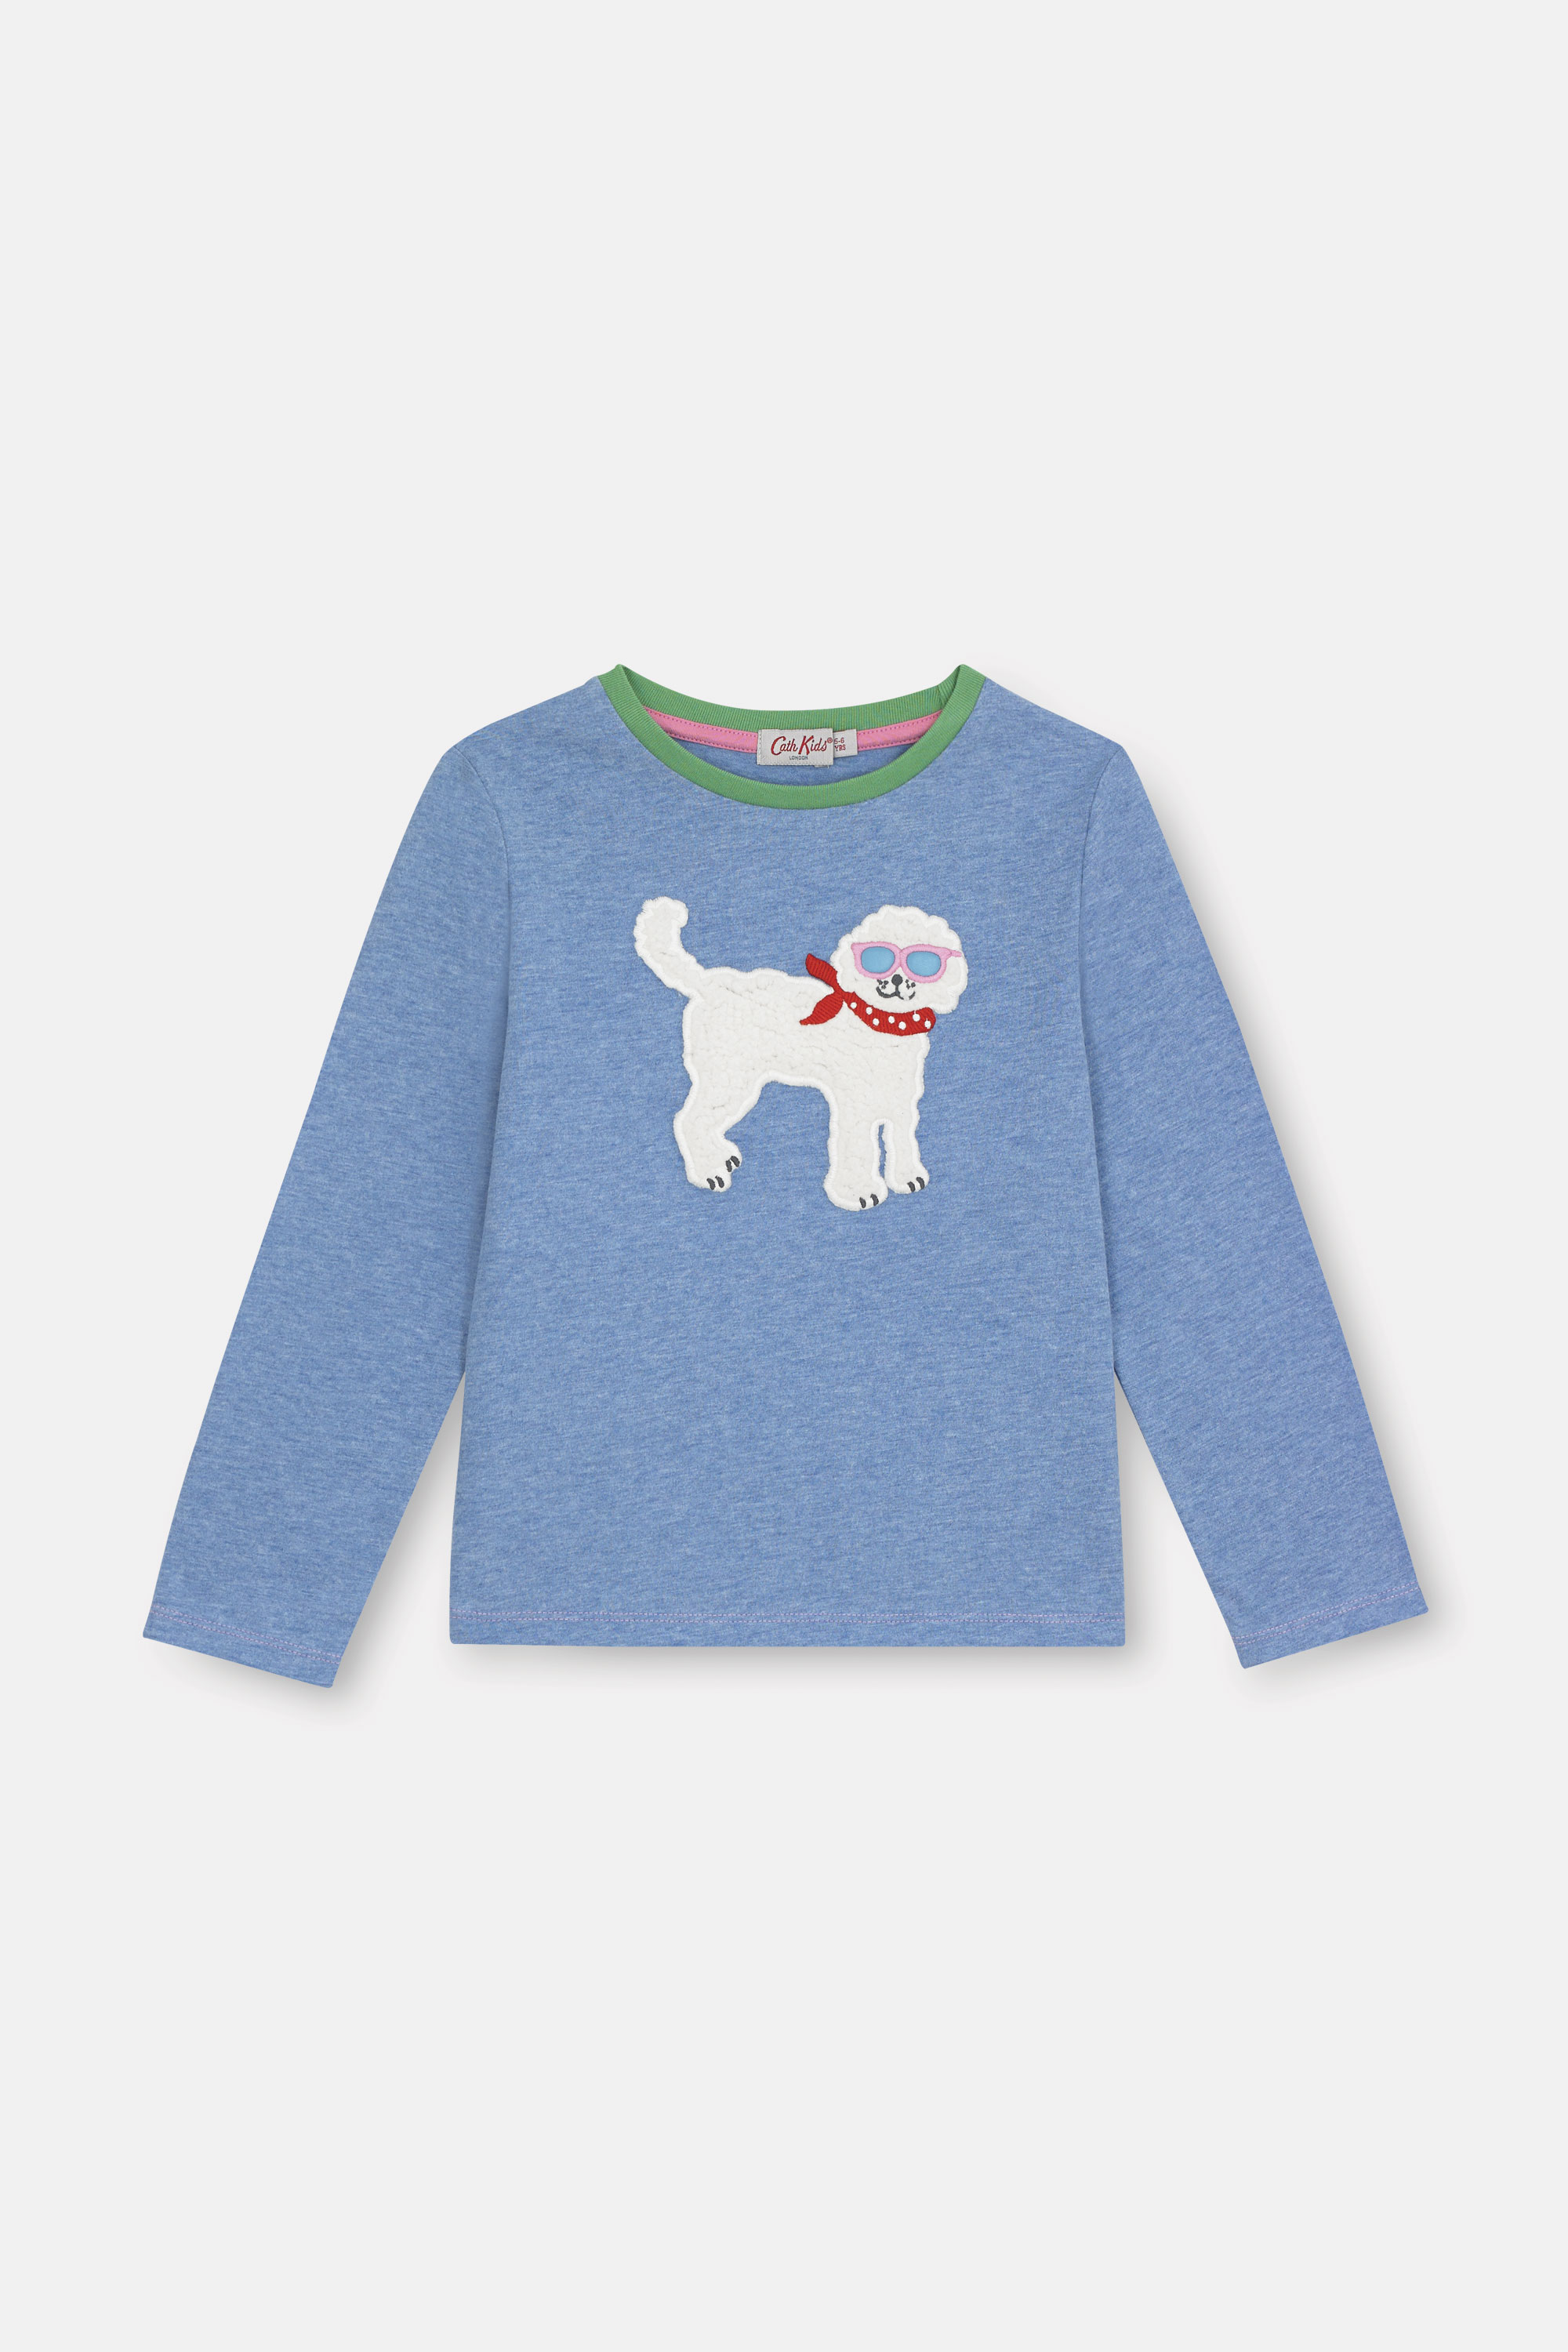 Cath Kidston Park Dogs Long Sleeve Everyday T-Shirt in Blue, 2-3 yr